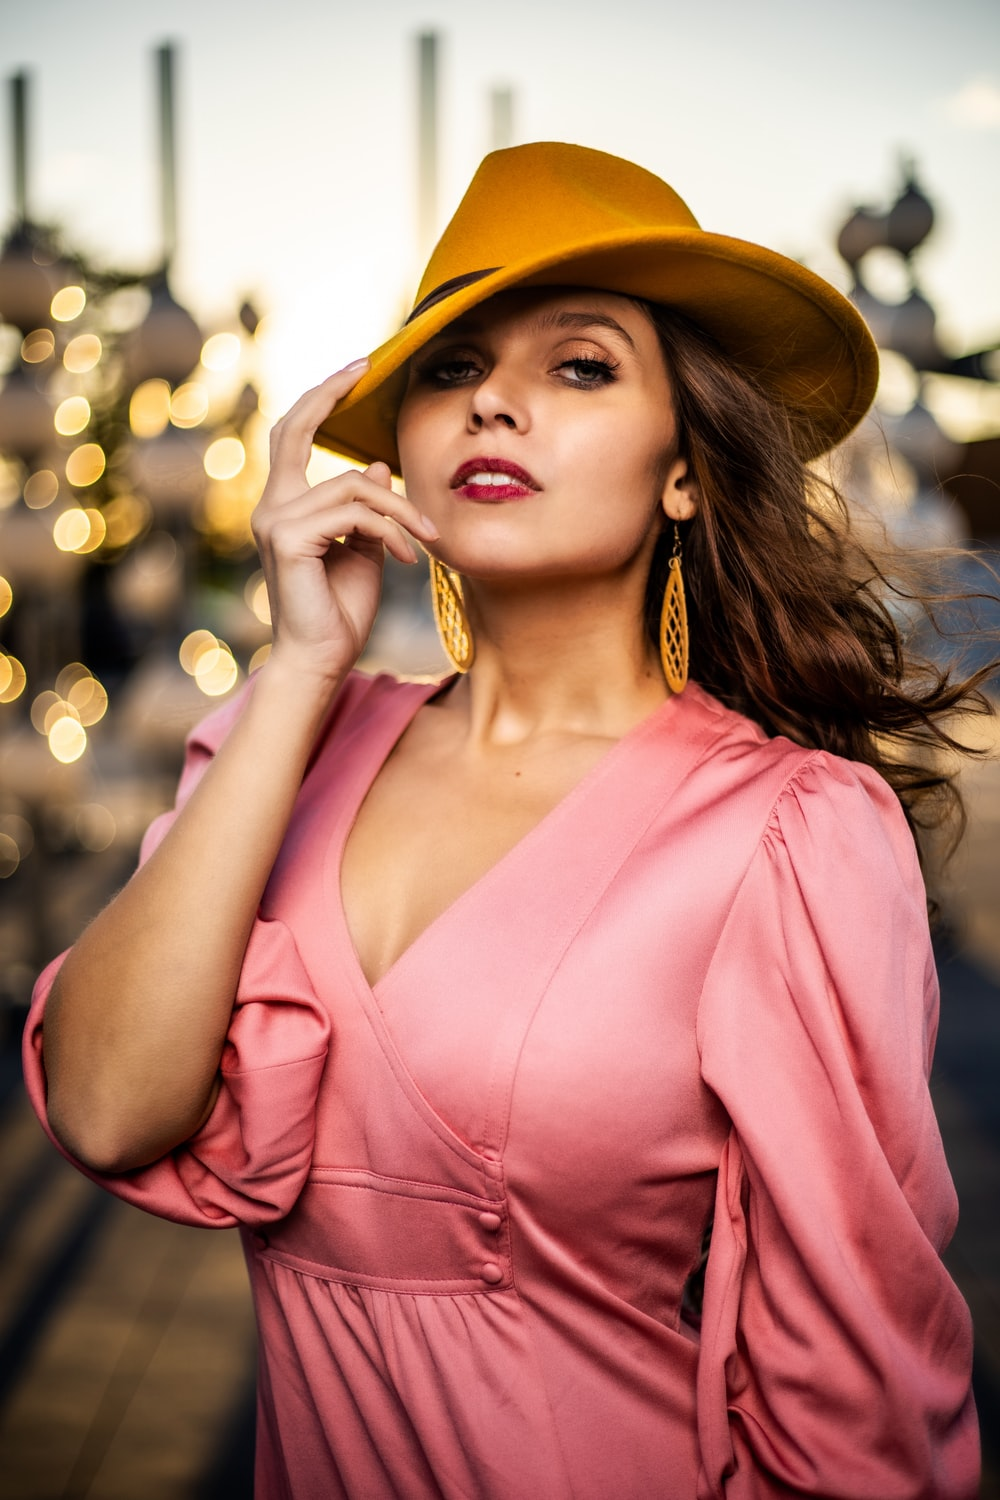 woman in pink v neck shirt wearing brown hat